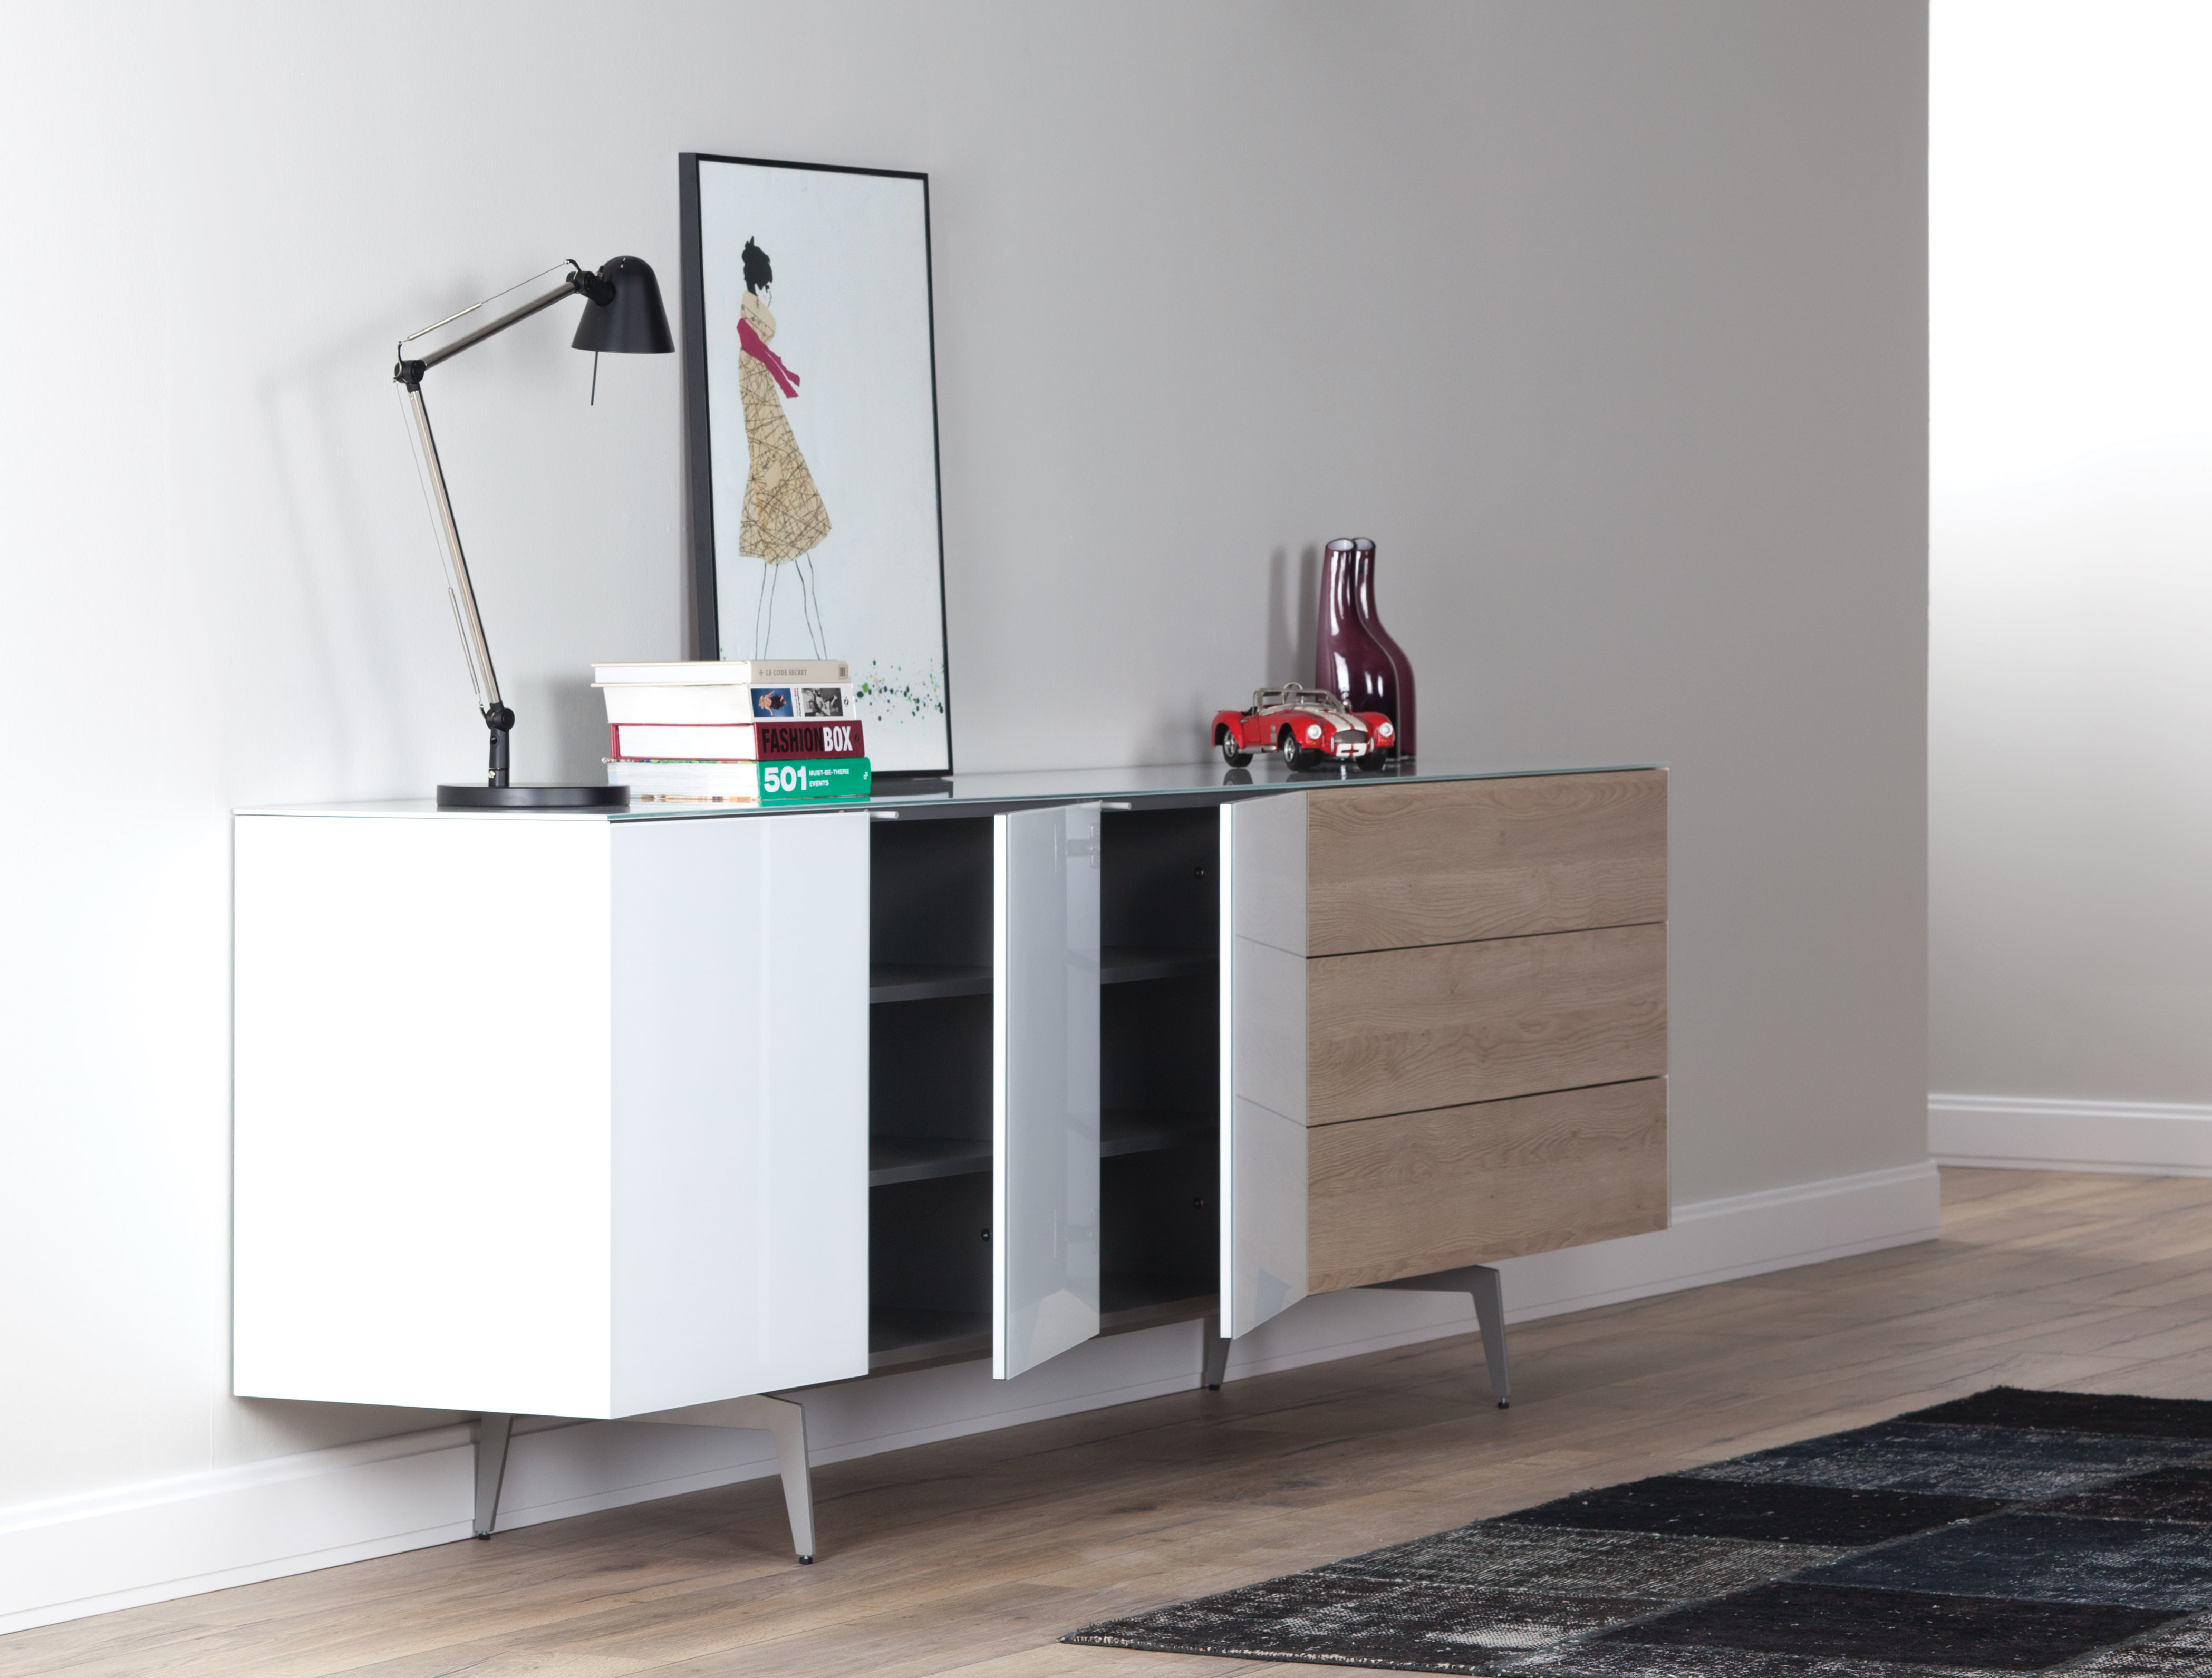 Sideboard Sonorous Elements, Kommode Kombination SB-K1, B=250cm / H=80cm 02